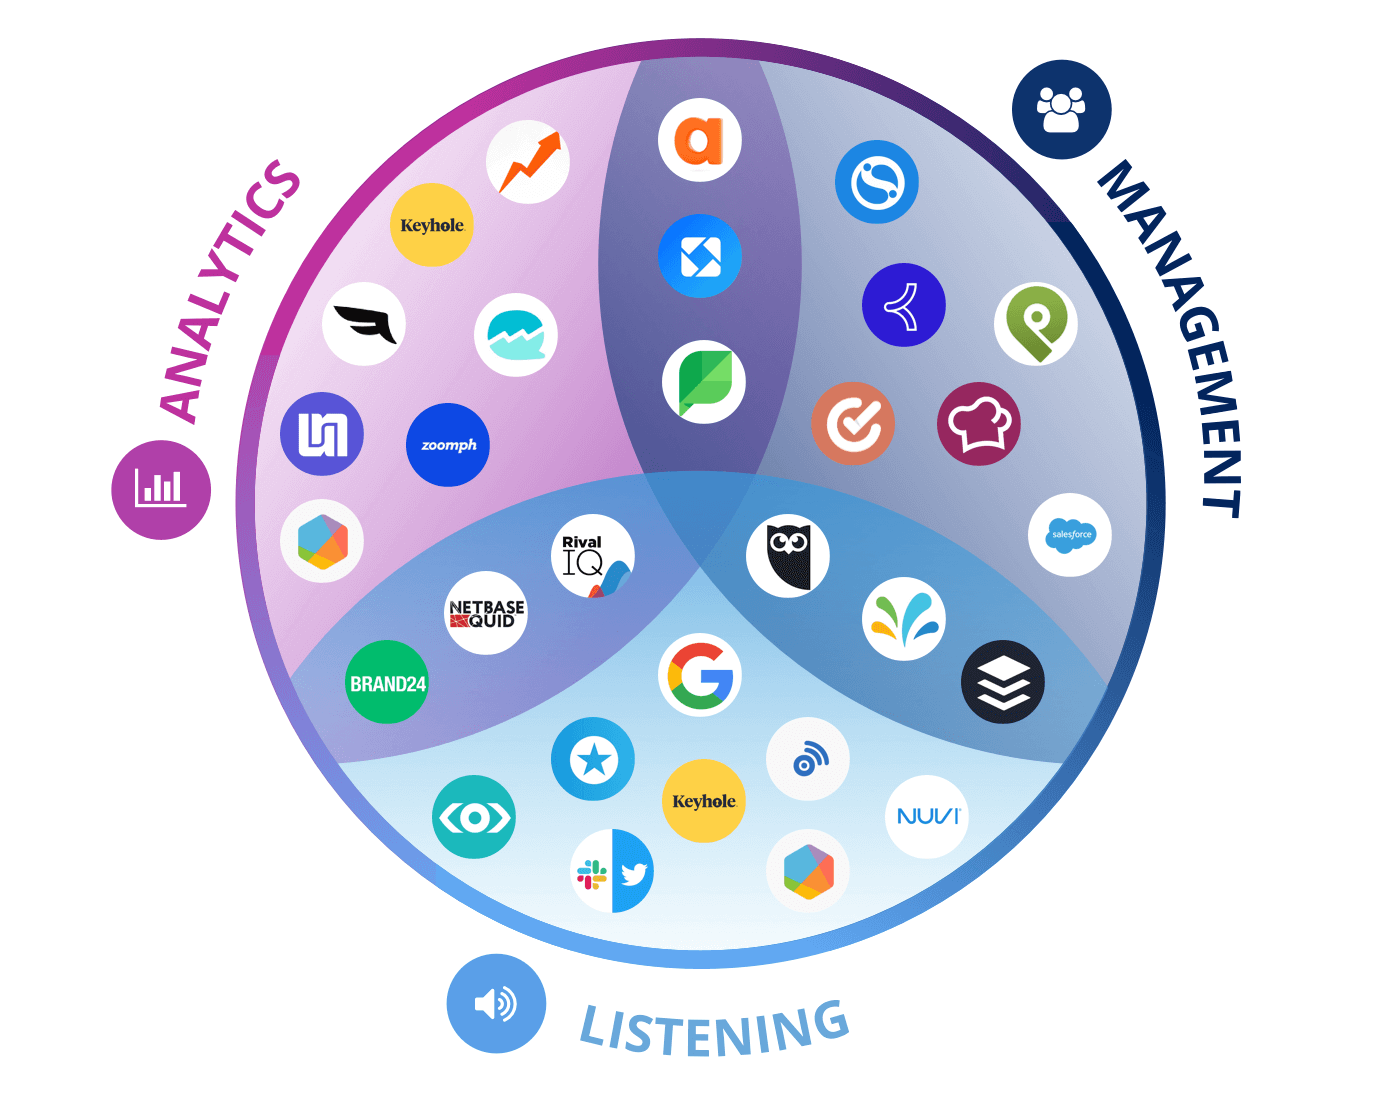 all social media marketing tool logos subdivided by category, management, analytics, and listening